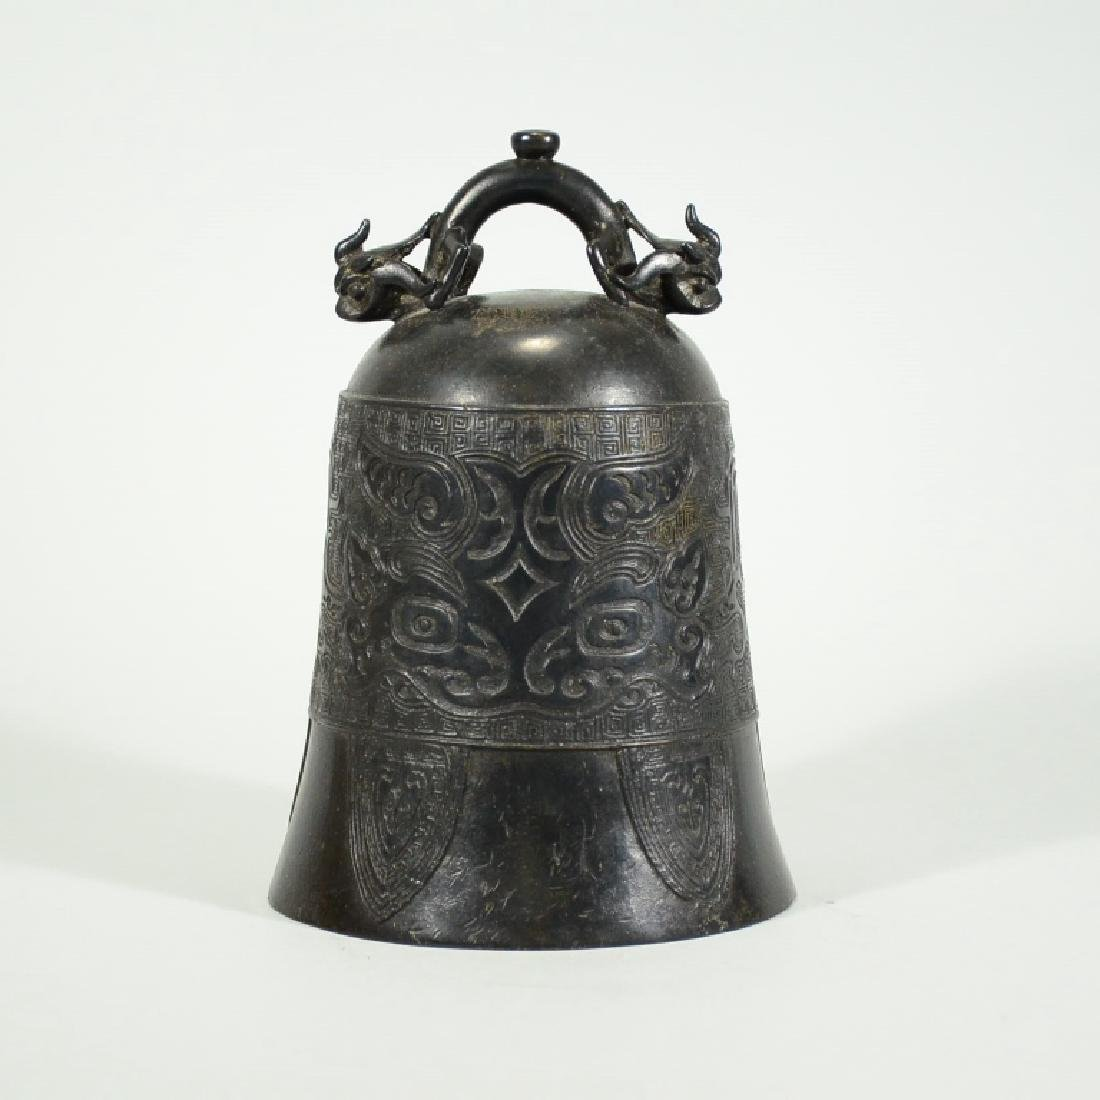 A TWO-DRAGON BRONZE BELL